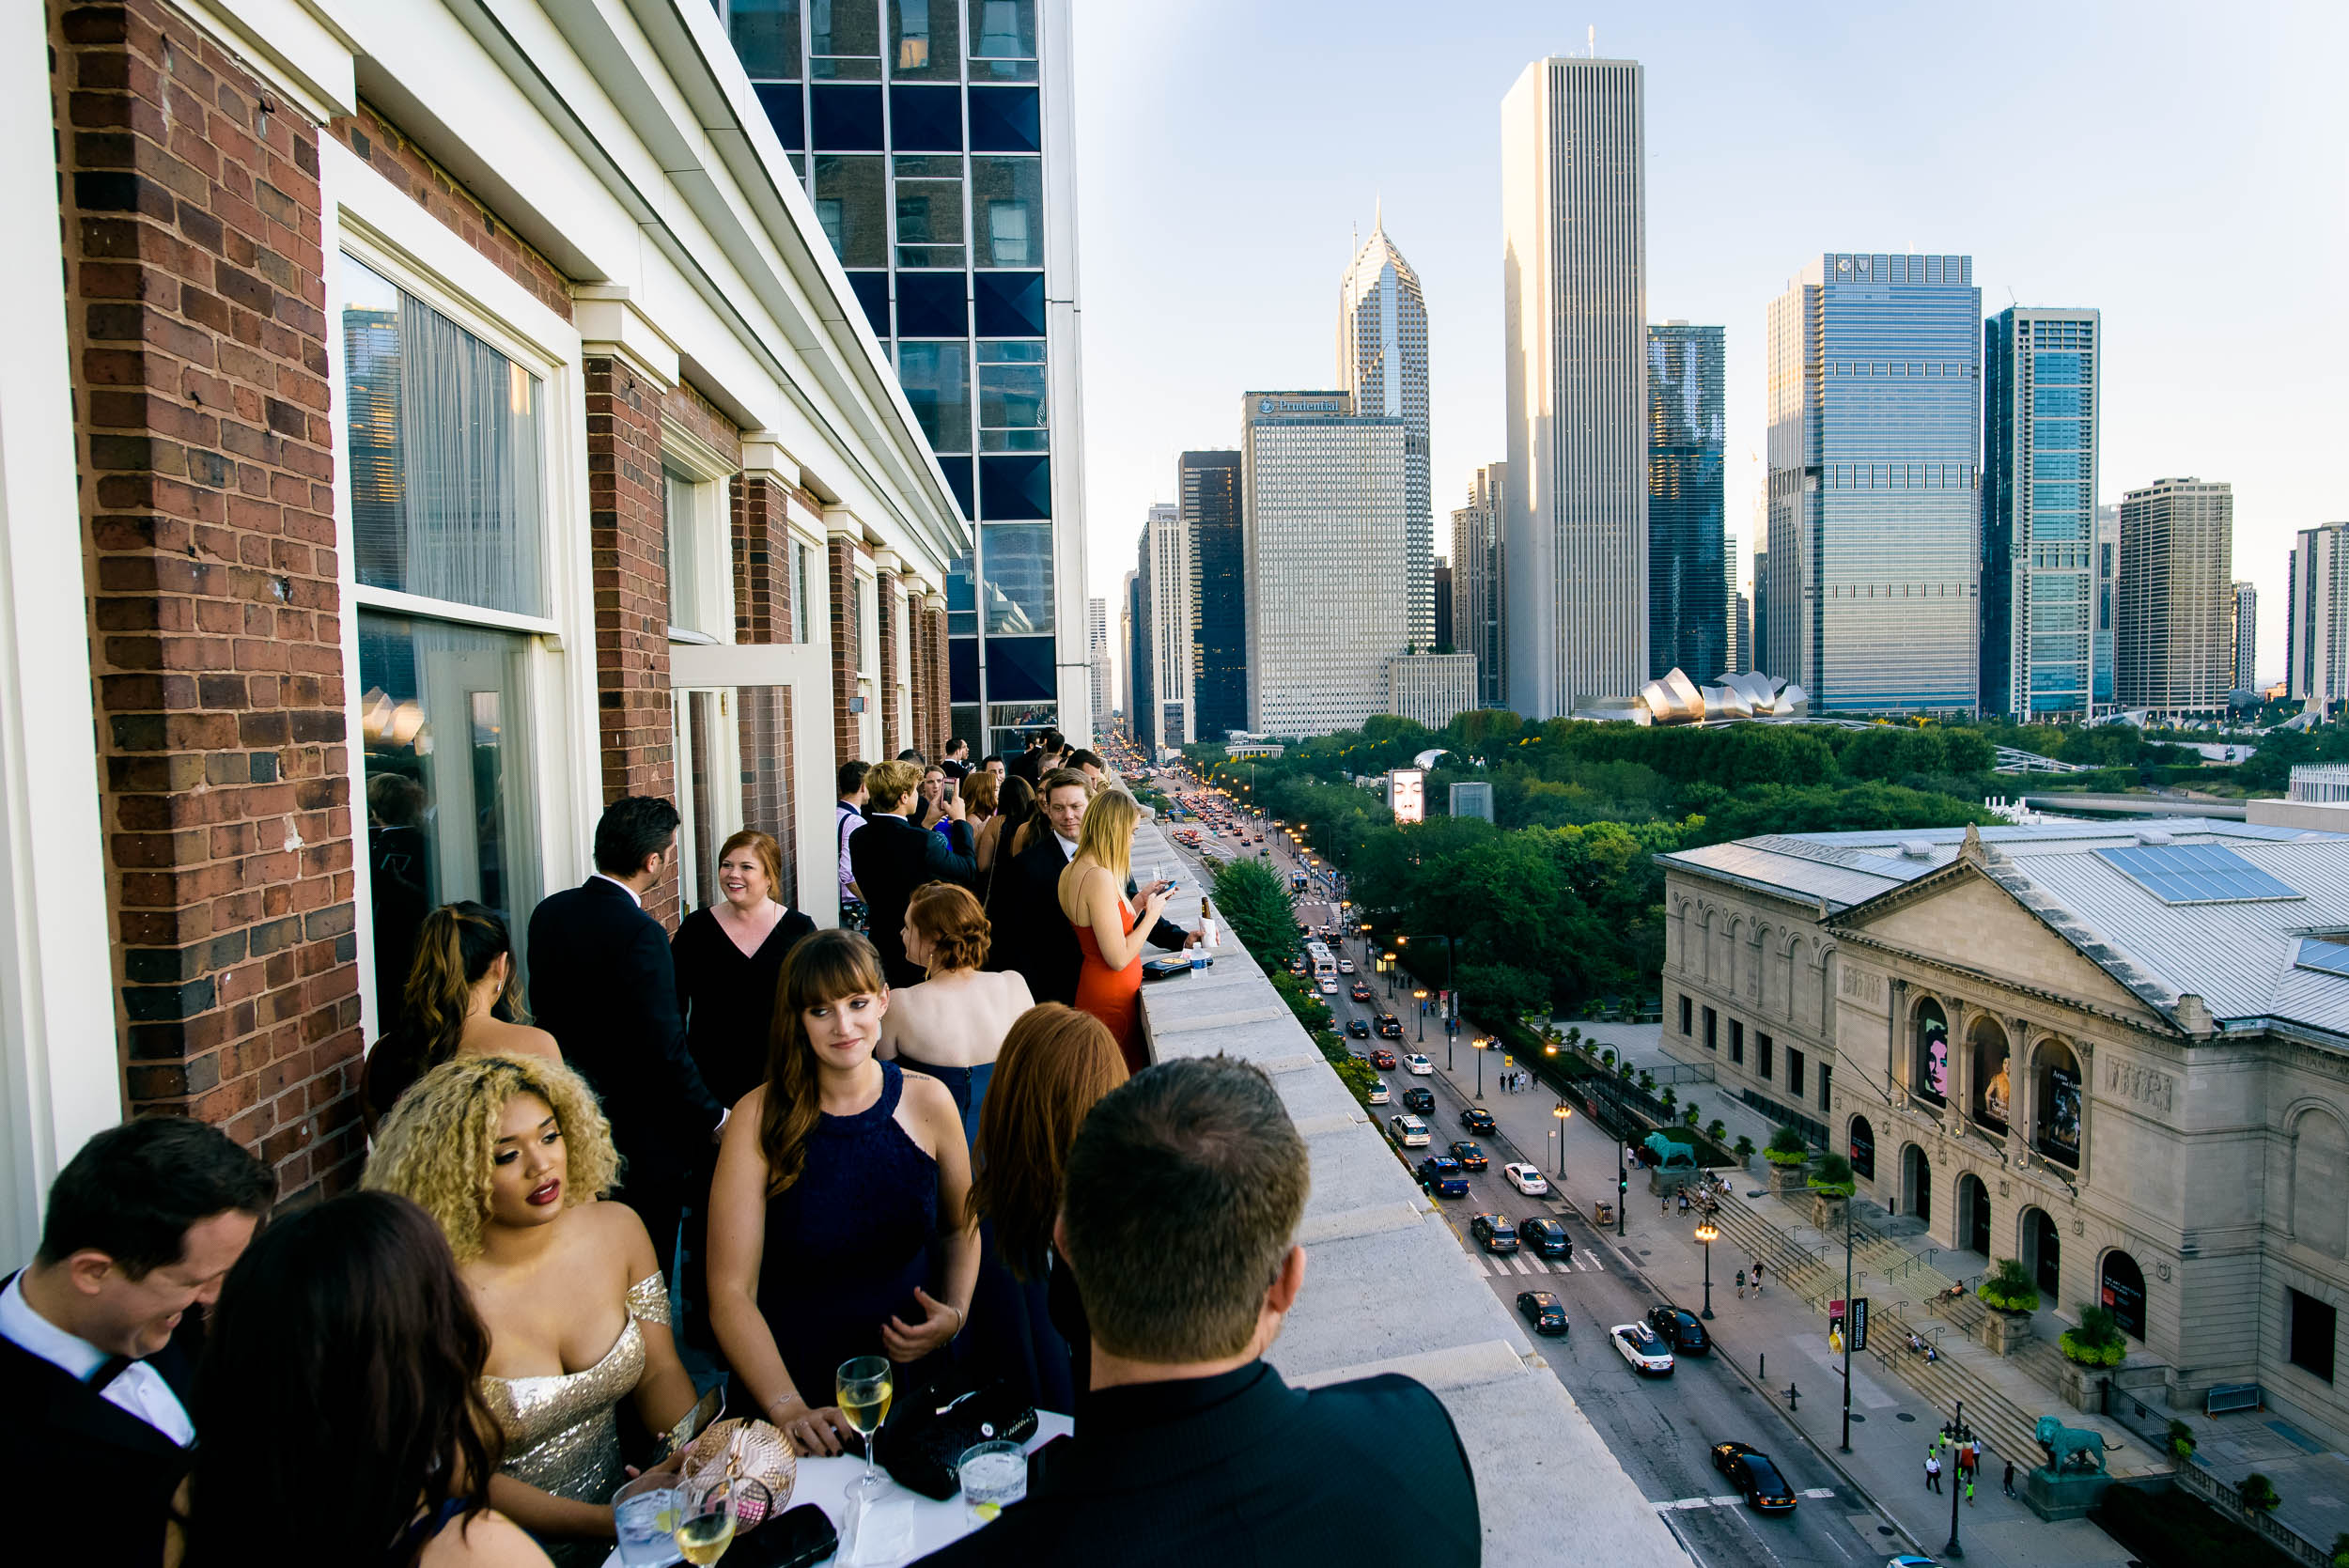 Chicago city skyline at luxurious fall wedding at the Chicago Symphony Center captured by J. Brown Photography. See more wedding ideas at jbrownphotography.com!